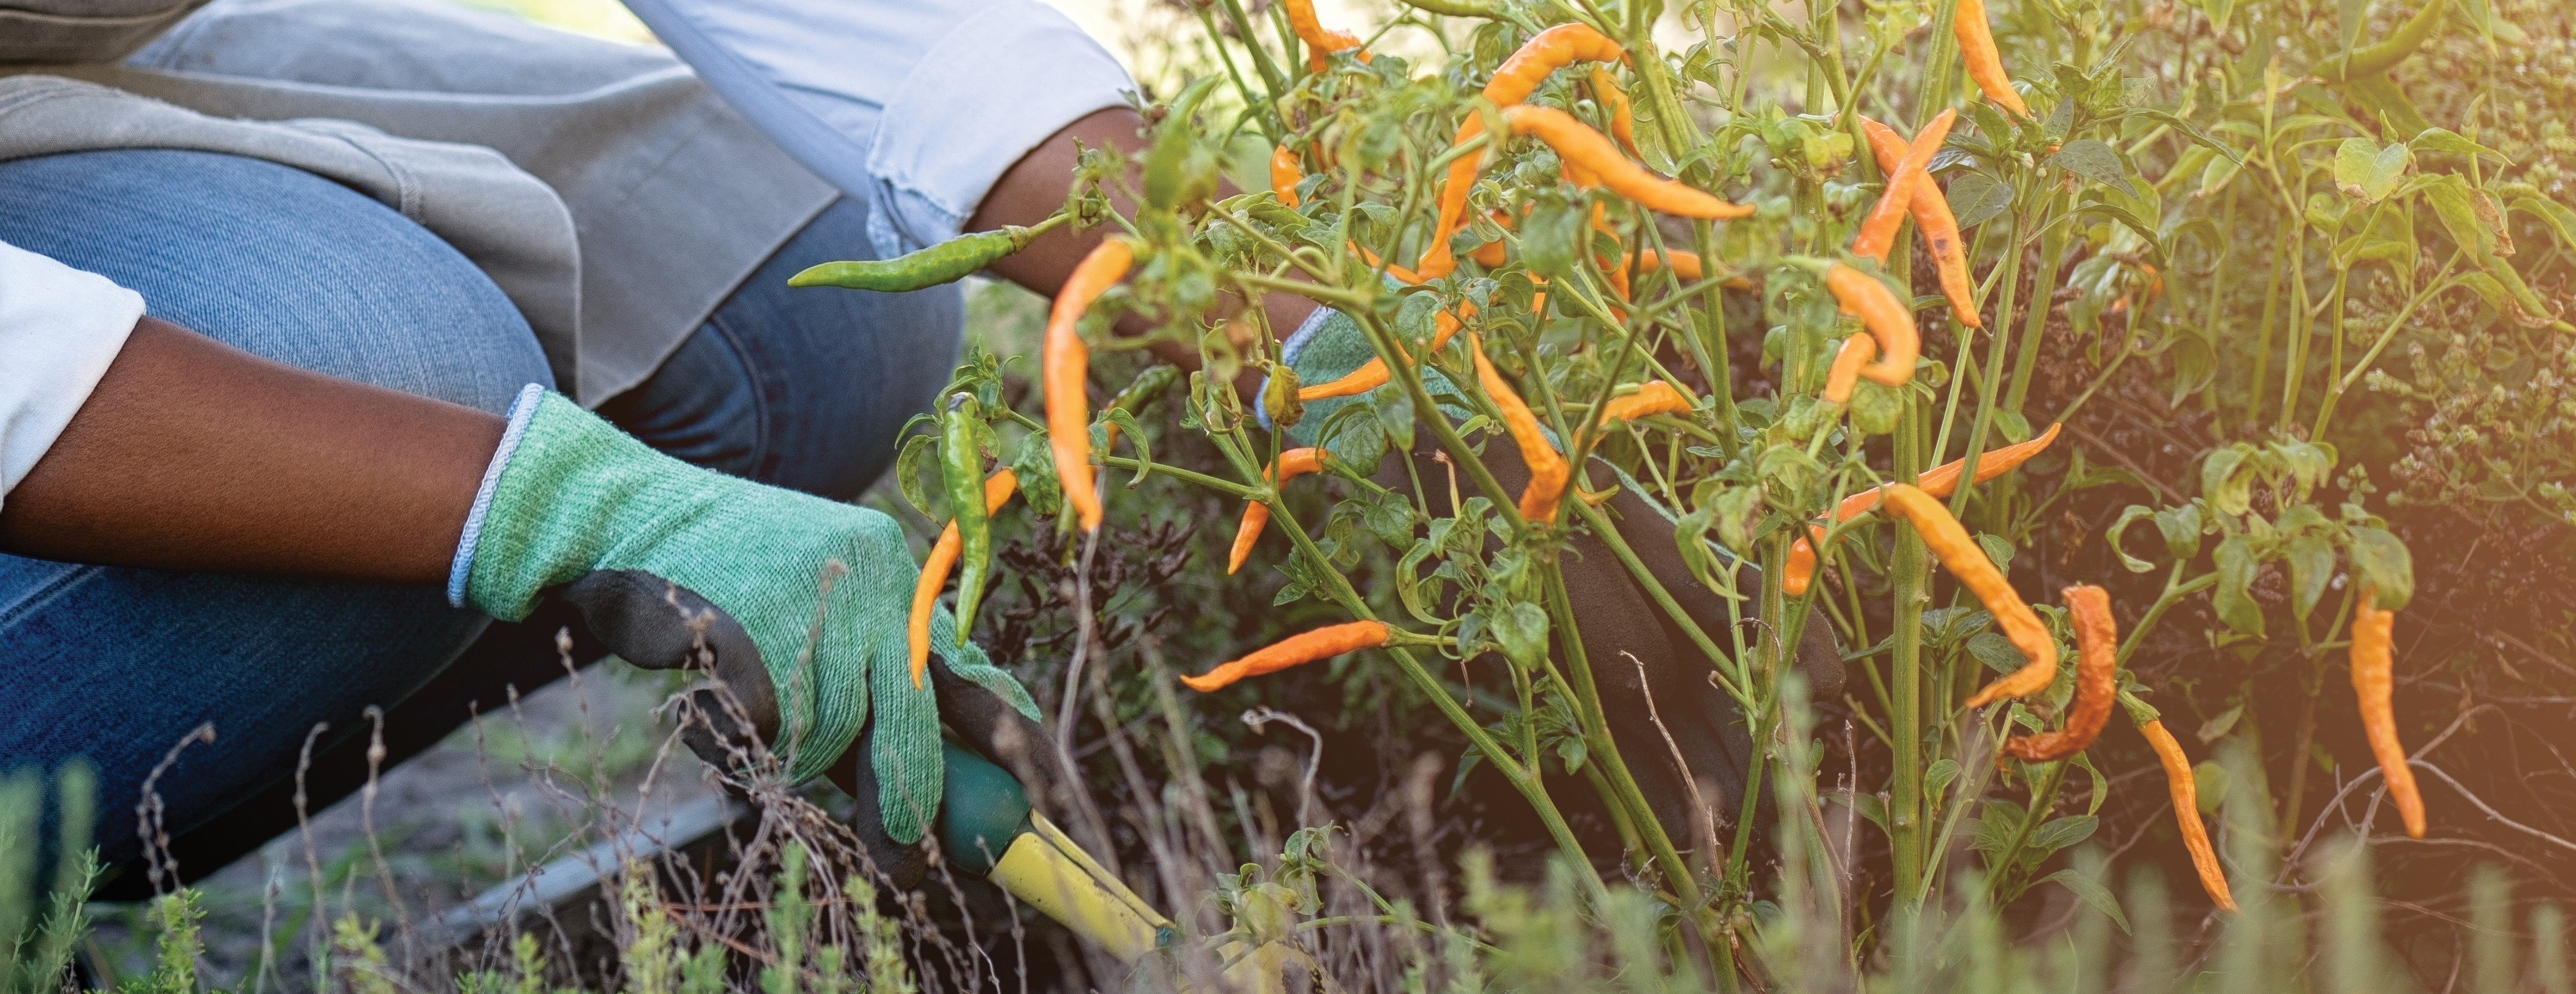 From starting your seeds to gathering your harvest, we have gardeners covered in every season.